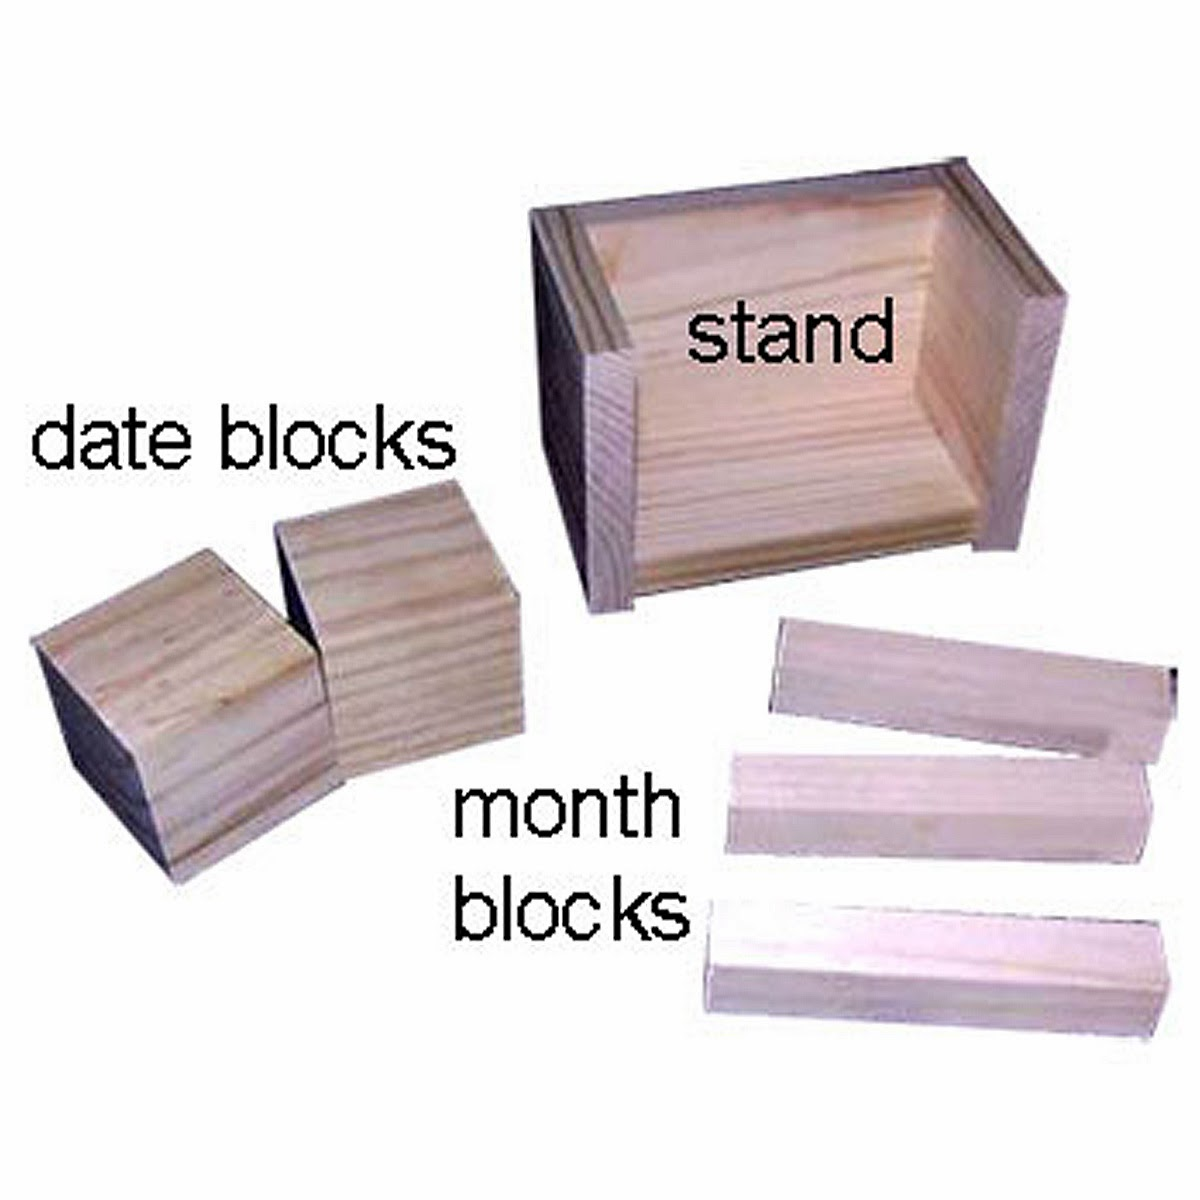 Uncategorized Wooden Block Calendar sniffing glue dots how to make a wooden block perpetual calendar photo credit for the labeled picture above is httpwww scrapbook crazy com